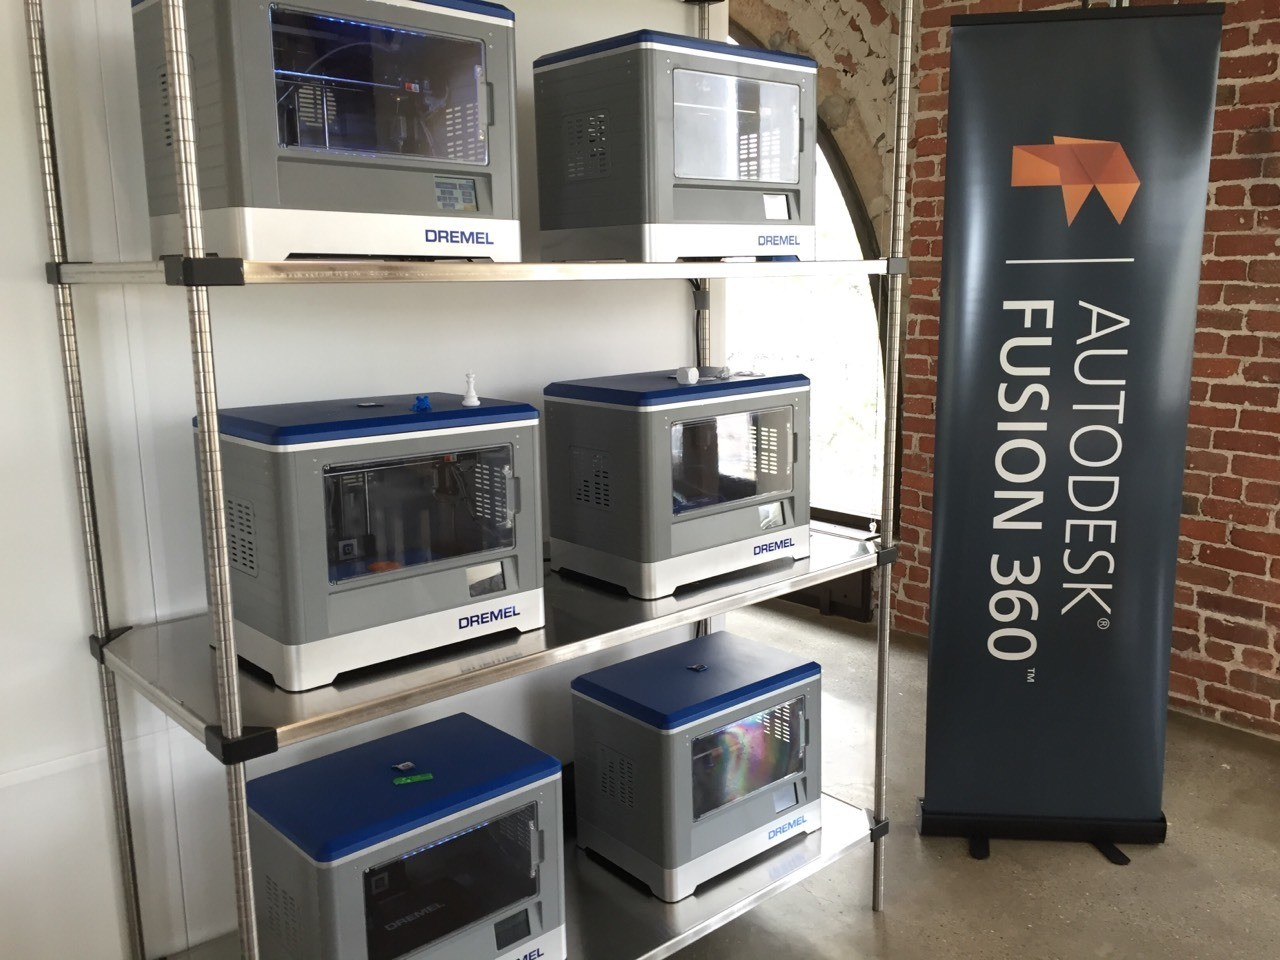 Fusion 360 training area at the Autodesk Gallery in San Francisco, along with the 3D printers.